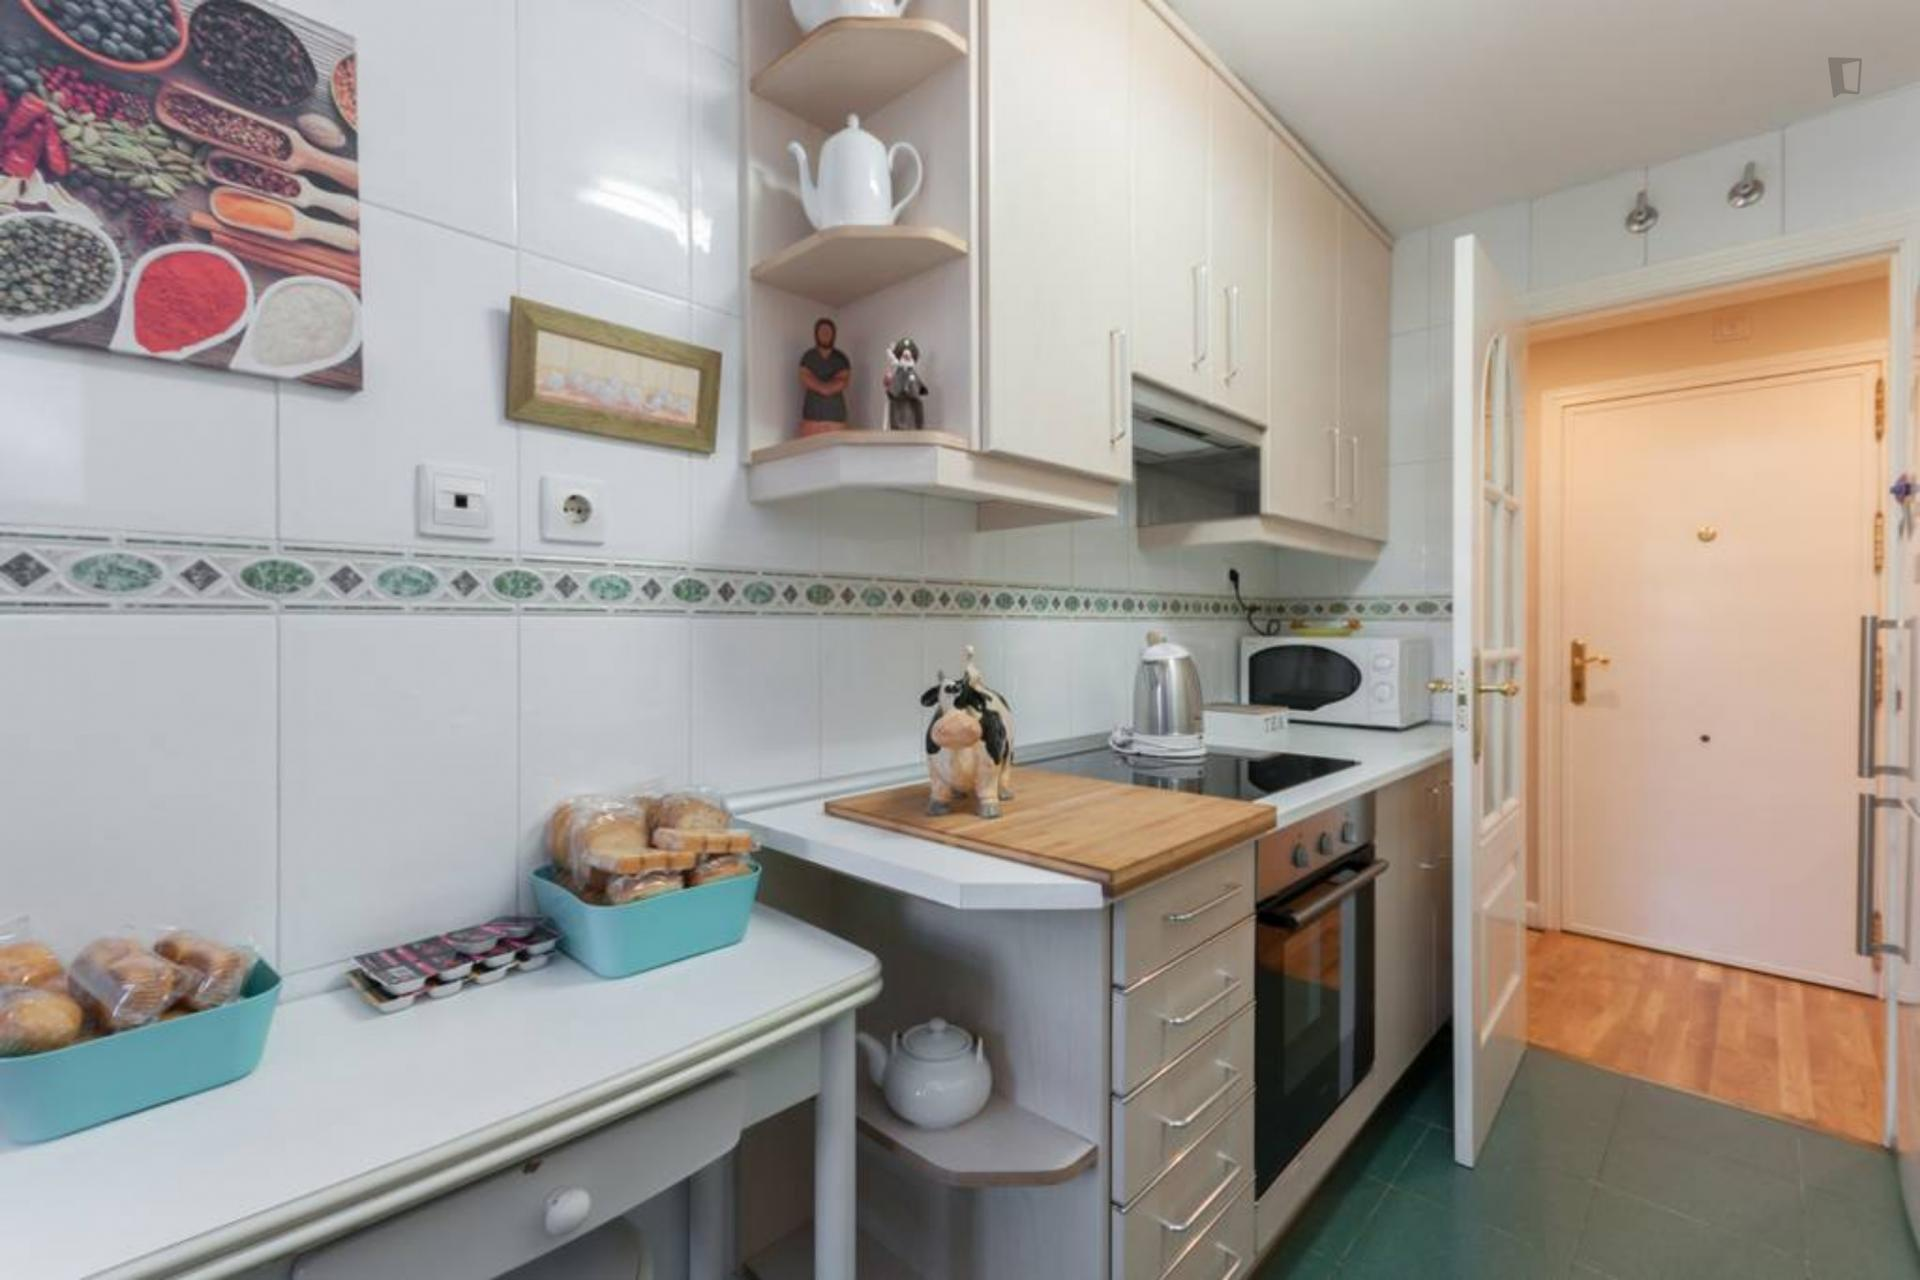 Bolivar - Apartment for expats in Madrid